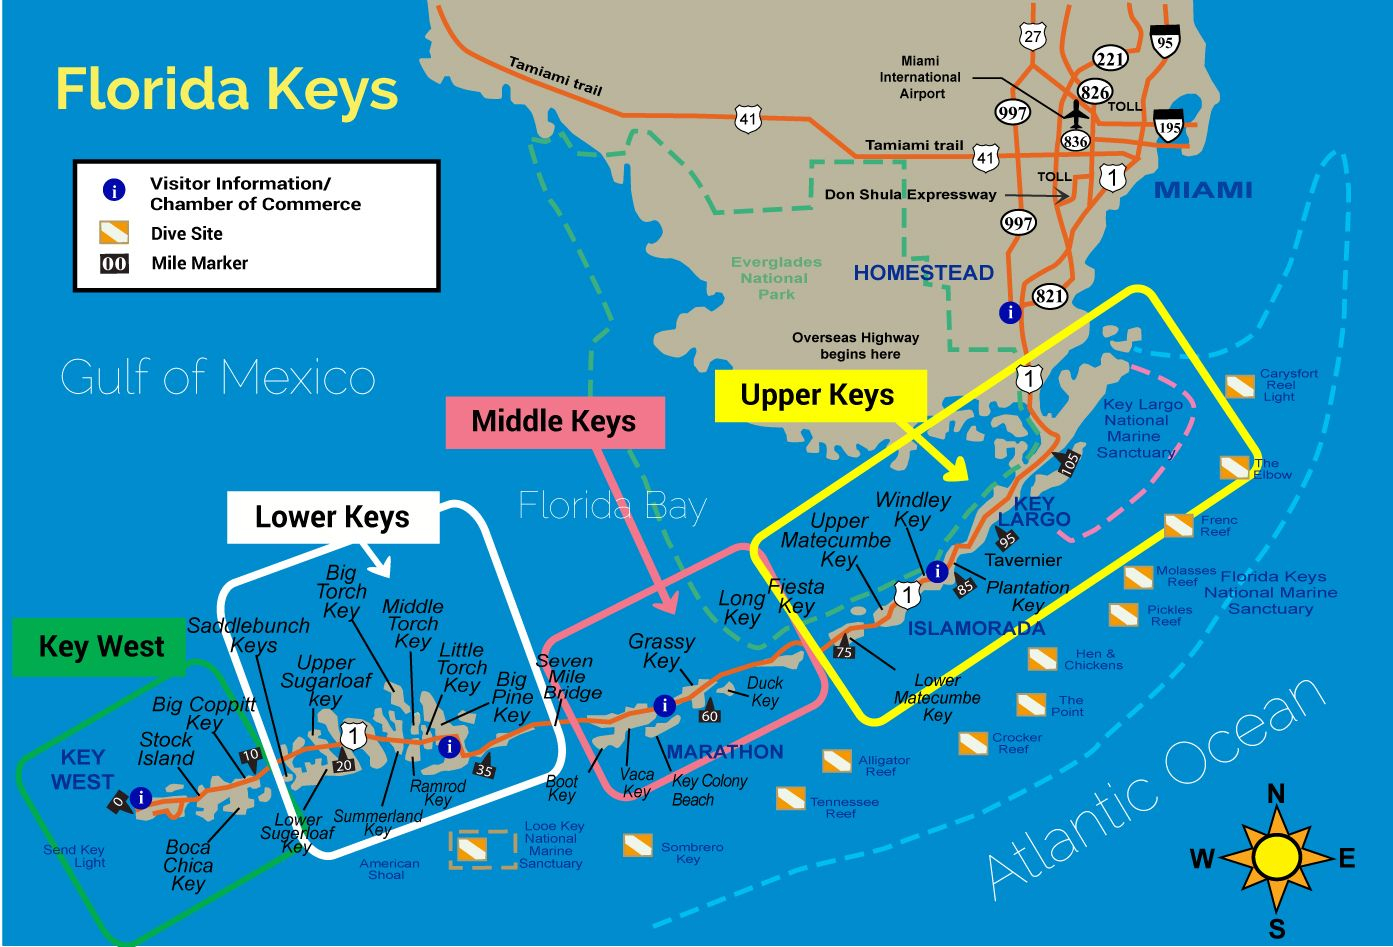 Map Of Areas Servedflorida Keys Vacation Rentals | Vacation - Detailed Map Of Florida Keys